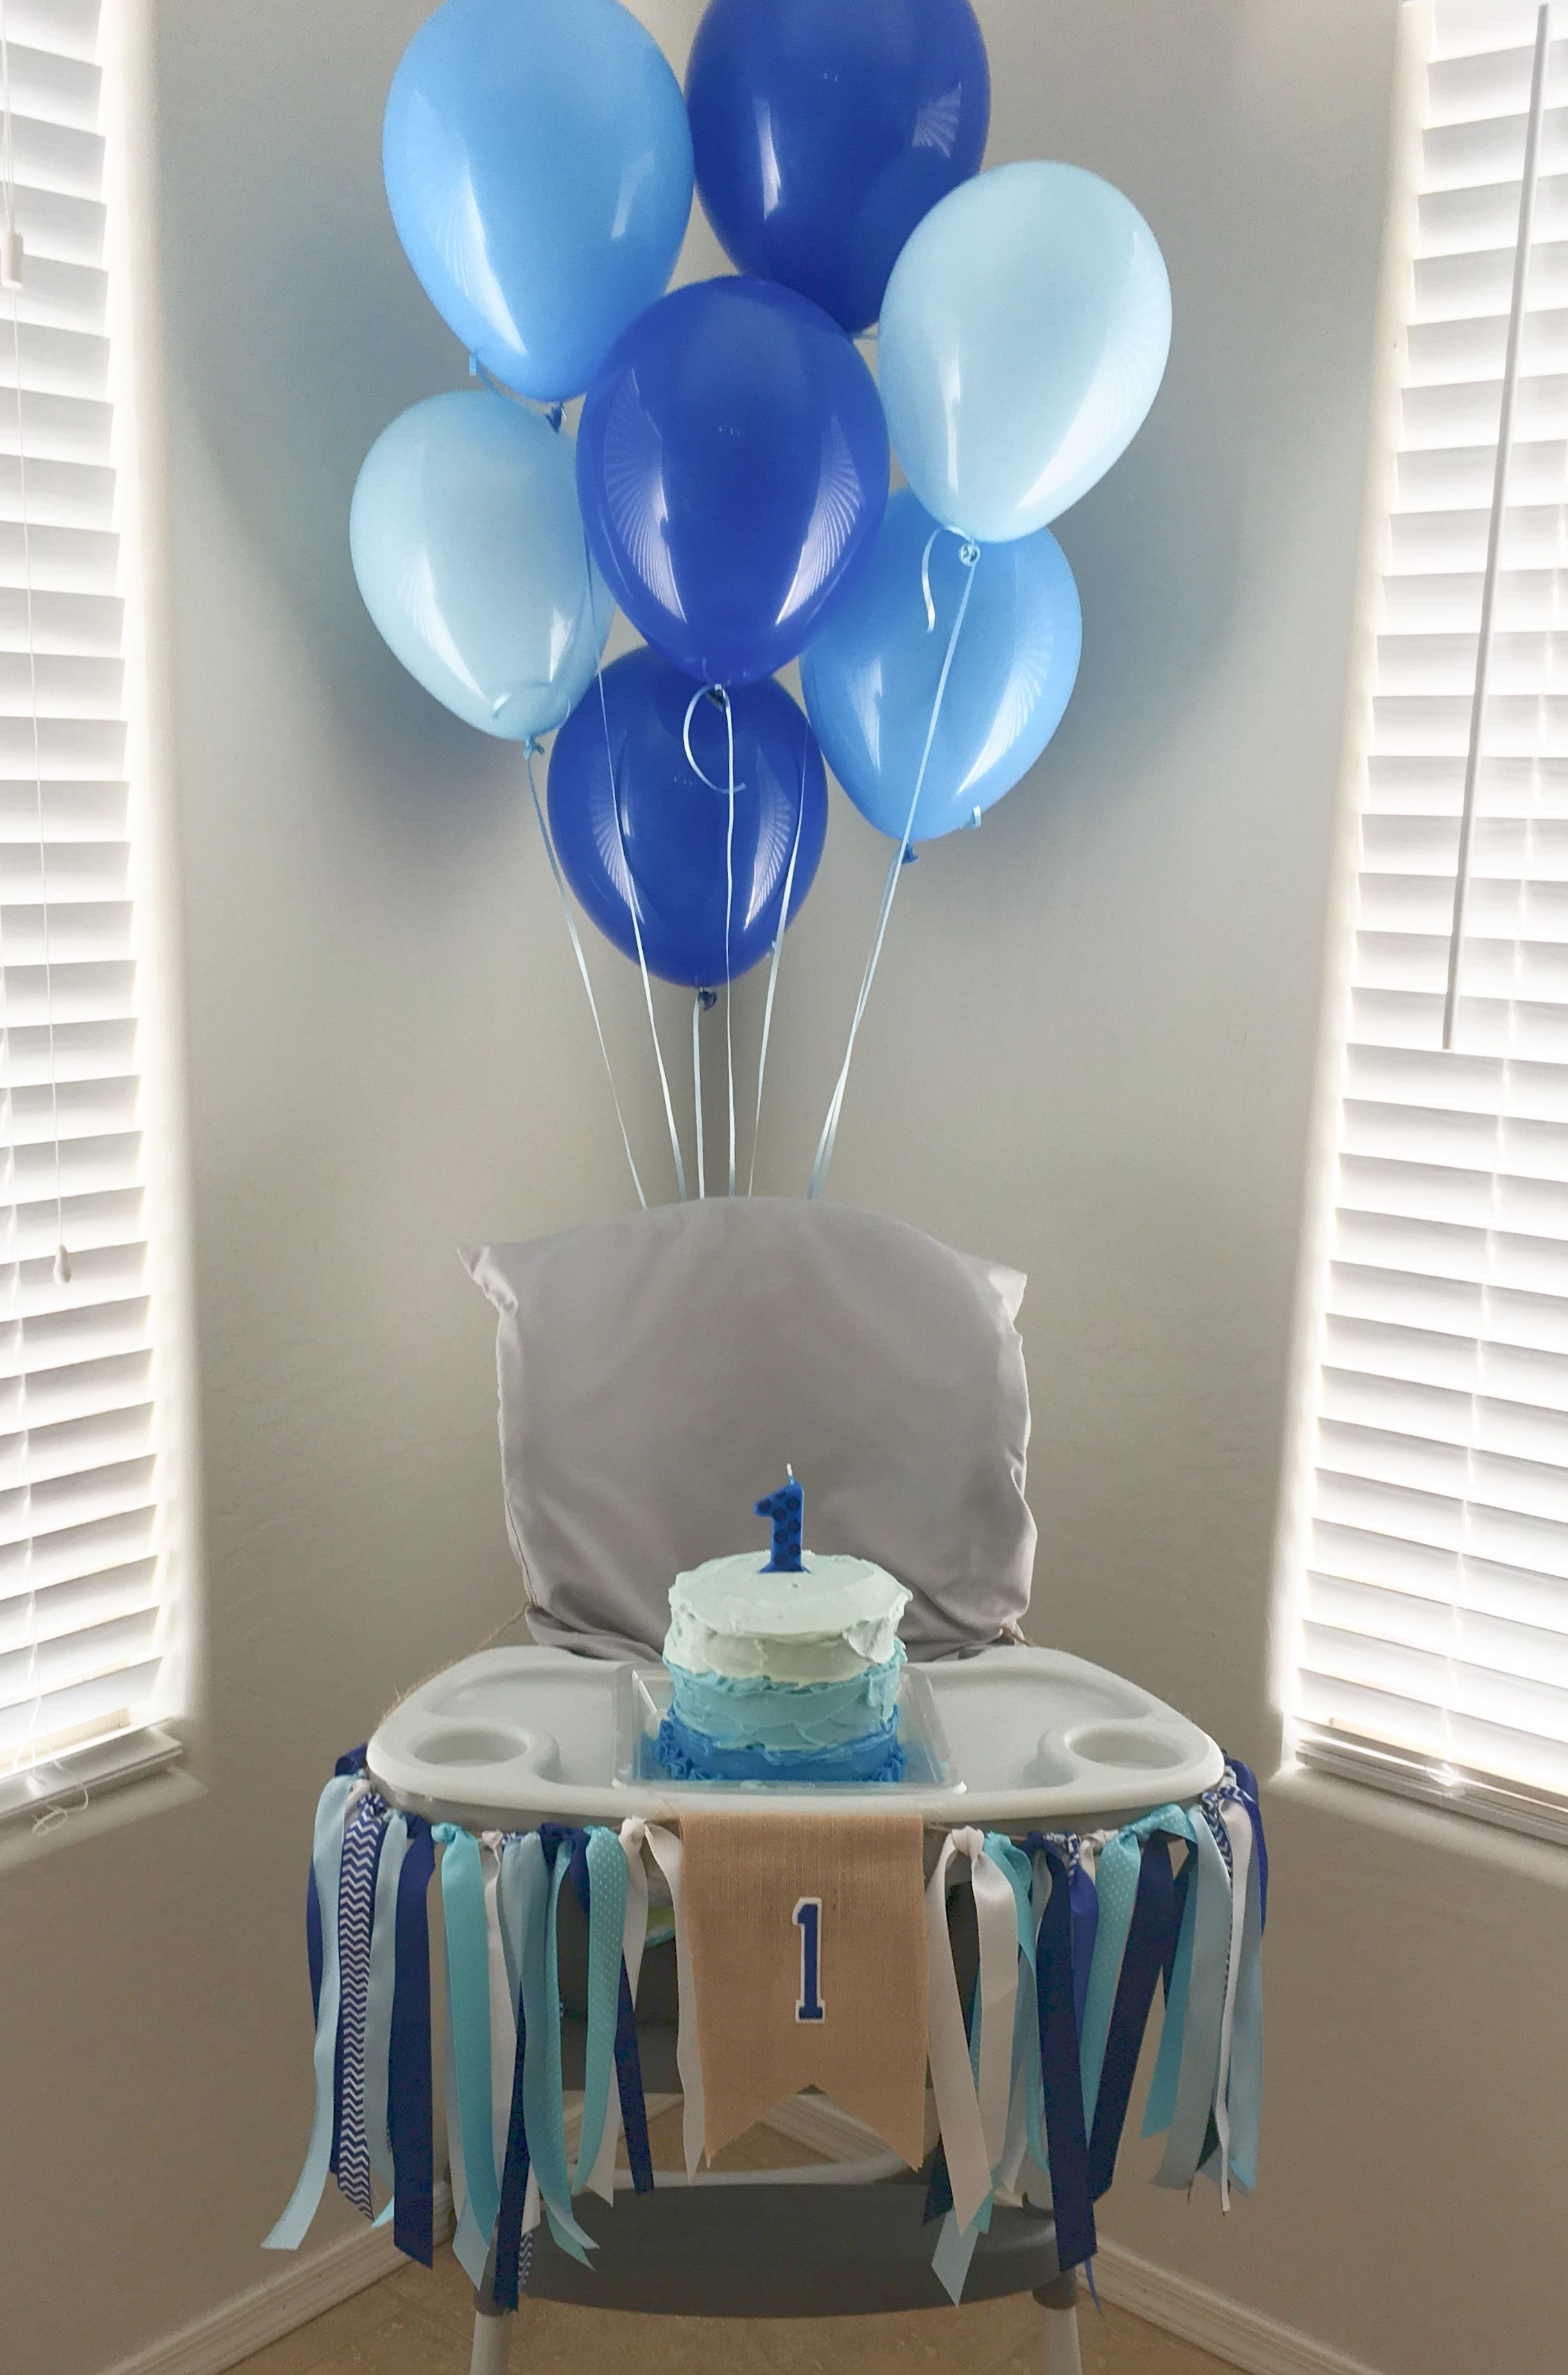 My Diy High Chair Banner And Smash Cake For Our Little 1 Year Old